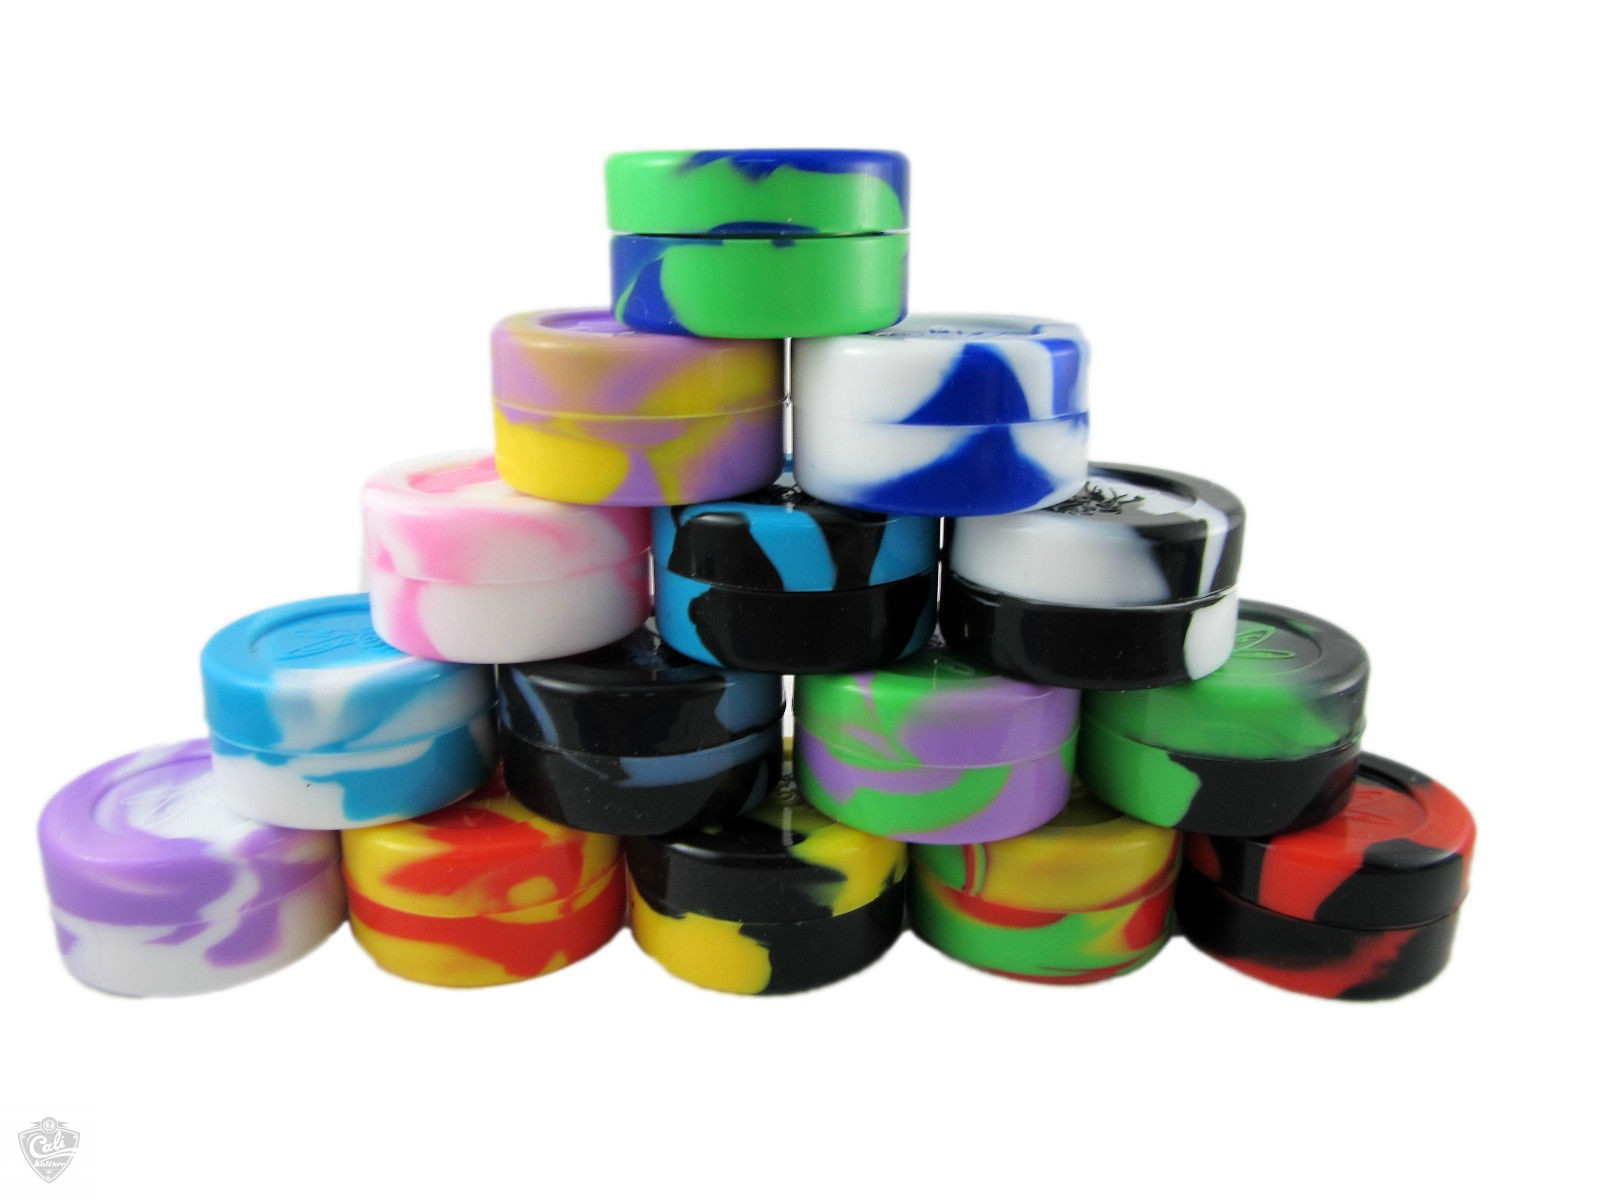 schulze waxed containers inc Schulze waxed containers inccase study help analysis with solution online from uk usa uae australia canada china experts.